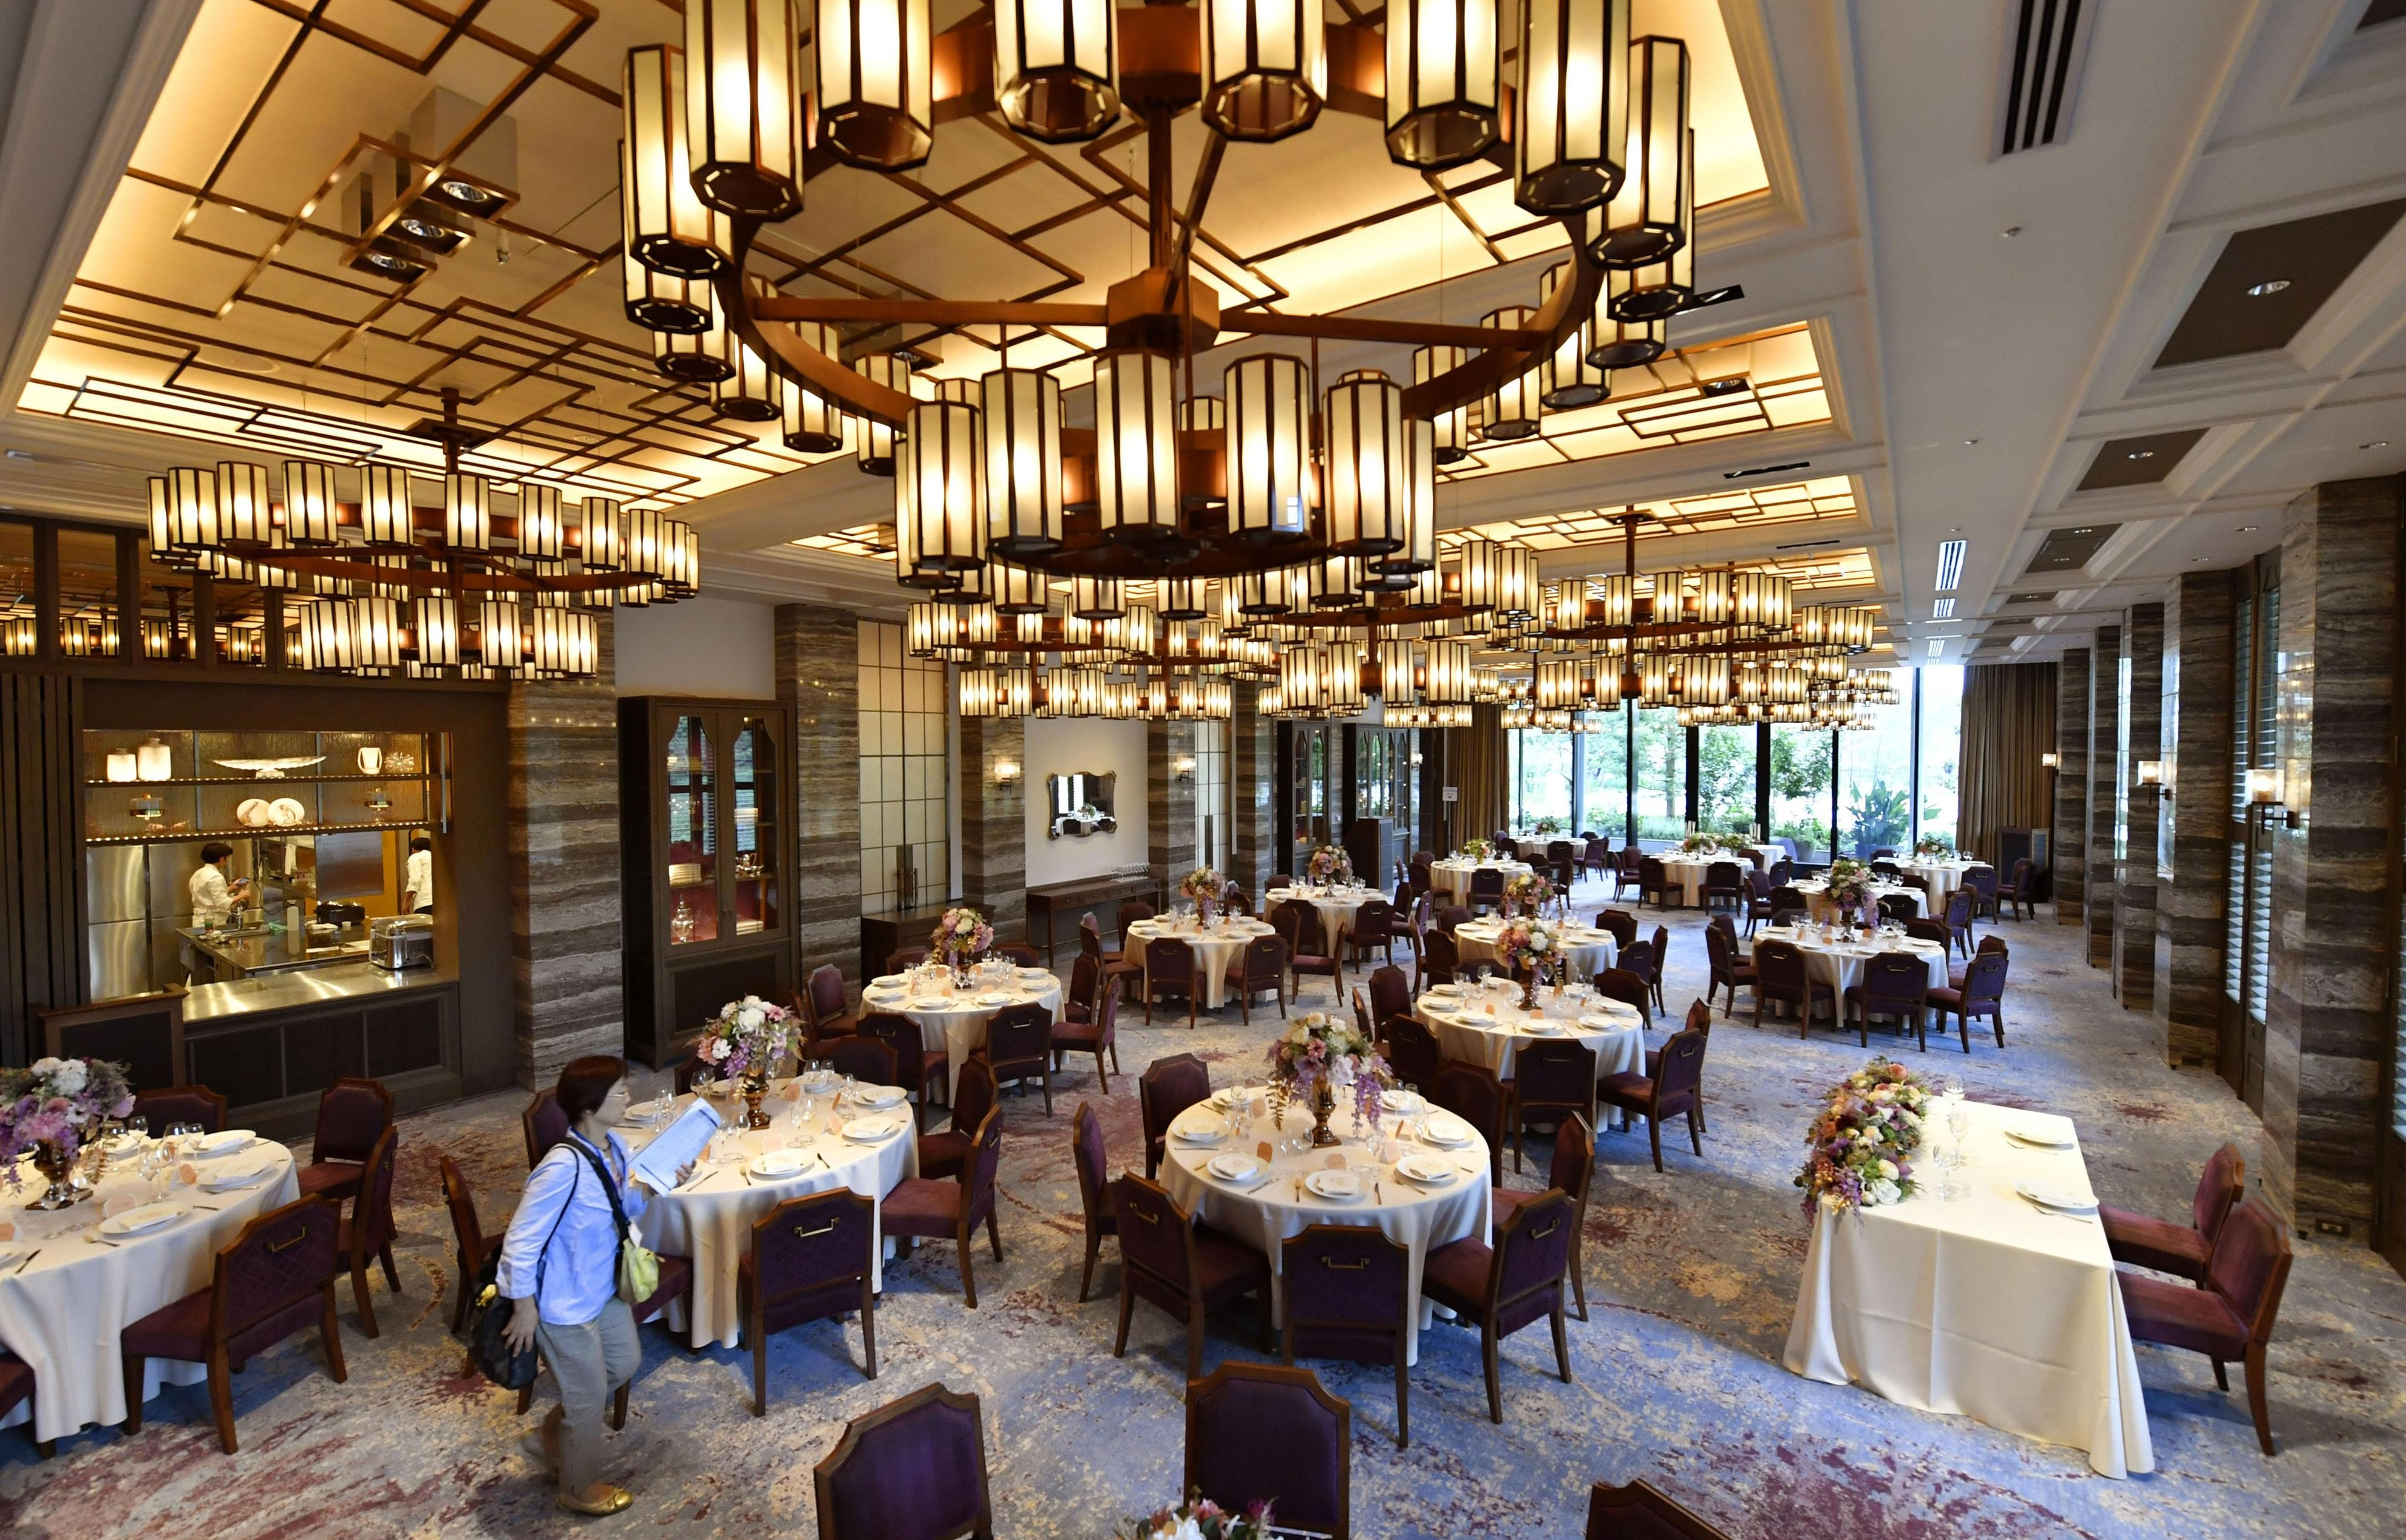 Luxury seibu hotel to open july 27 on site of former for Classic house akasaka prince